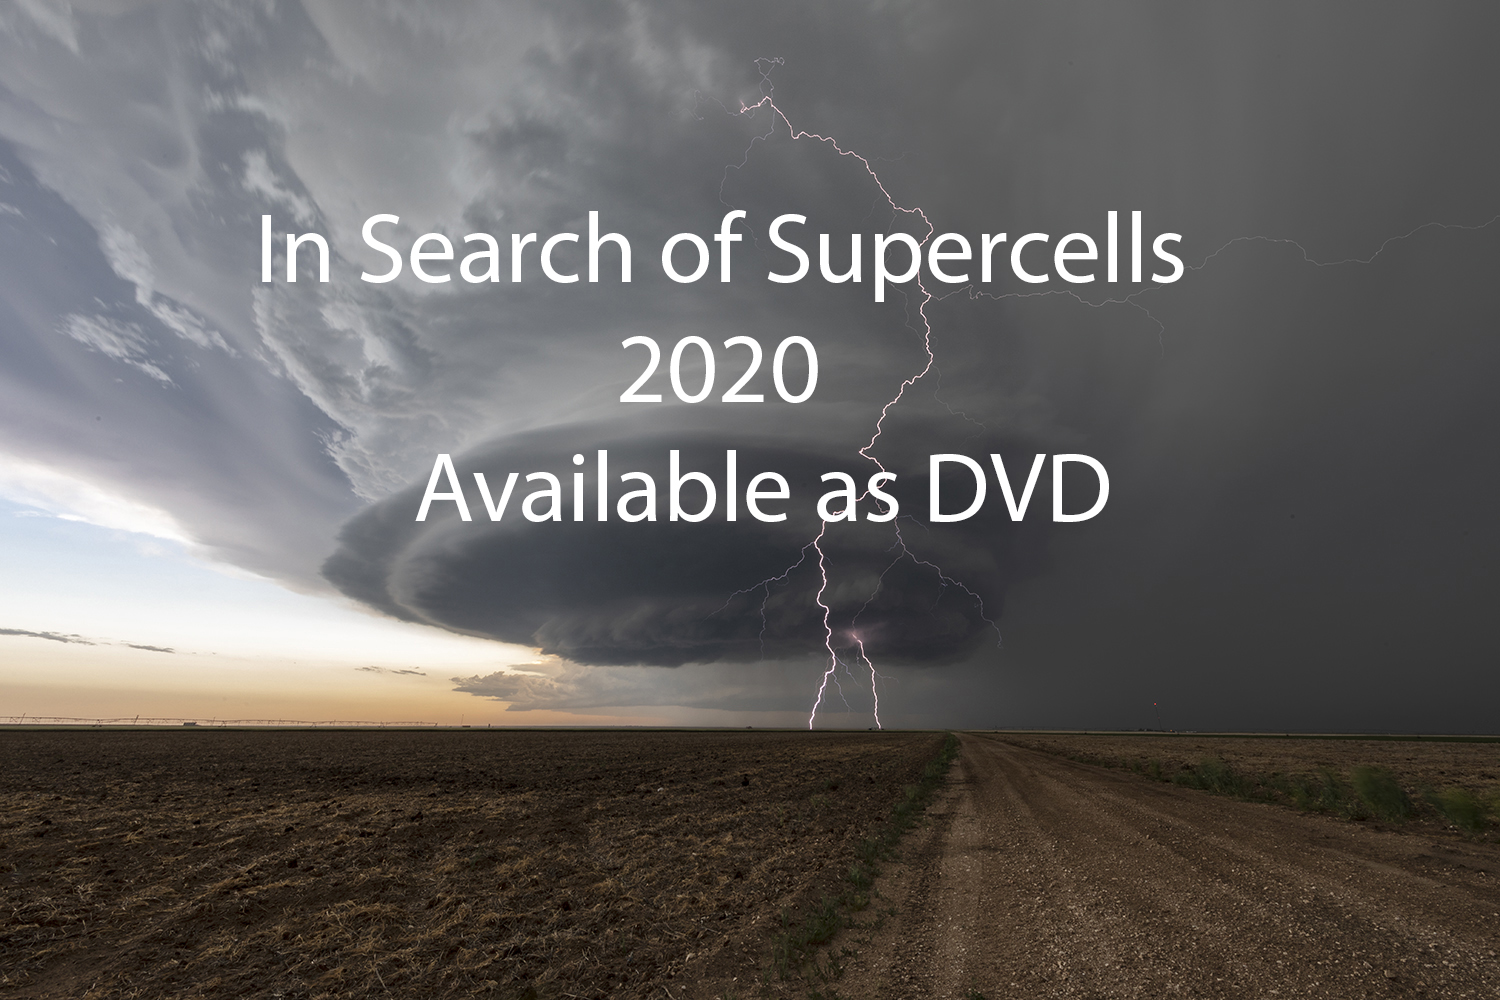 DVD set featuring storms from 2020